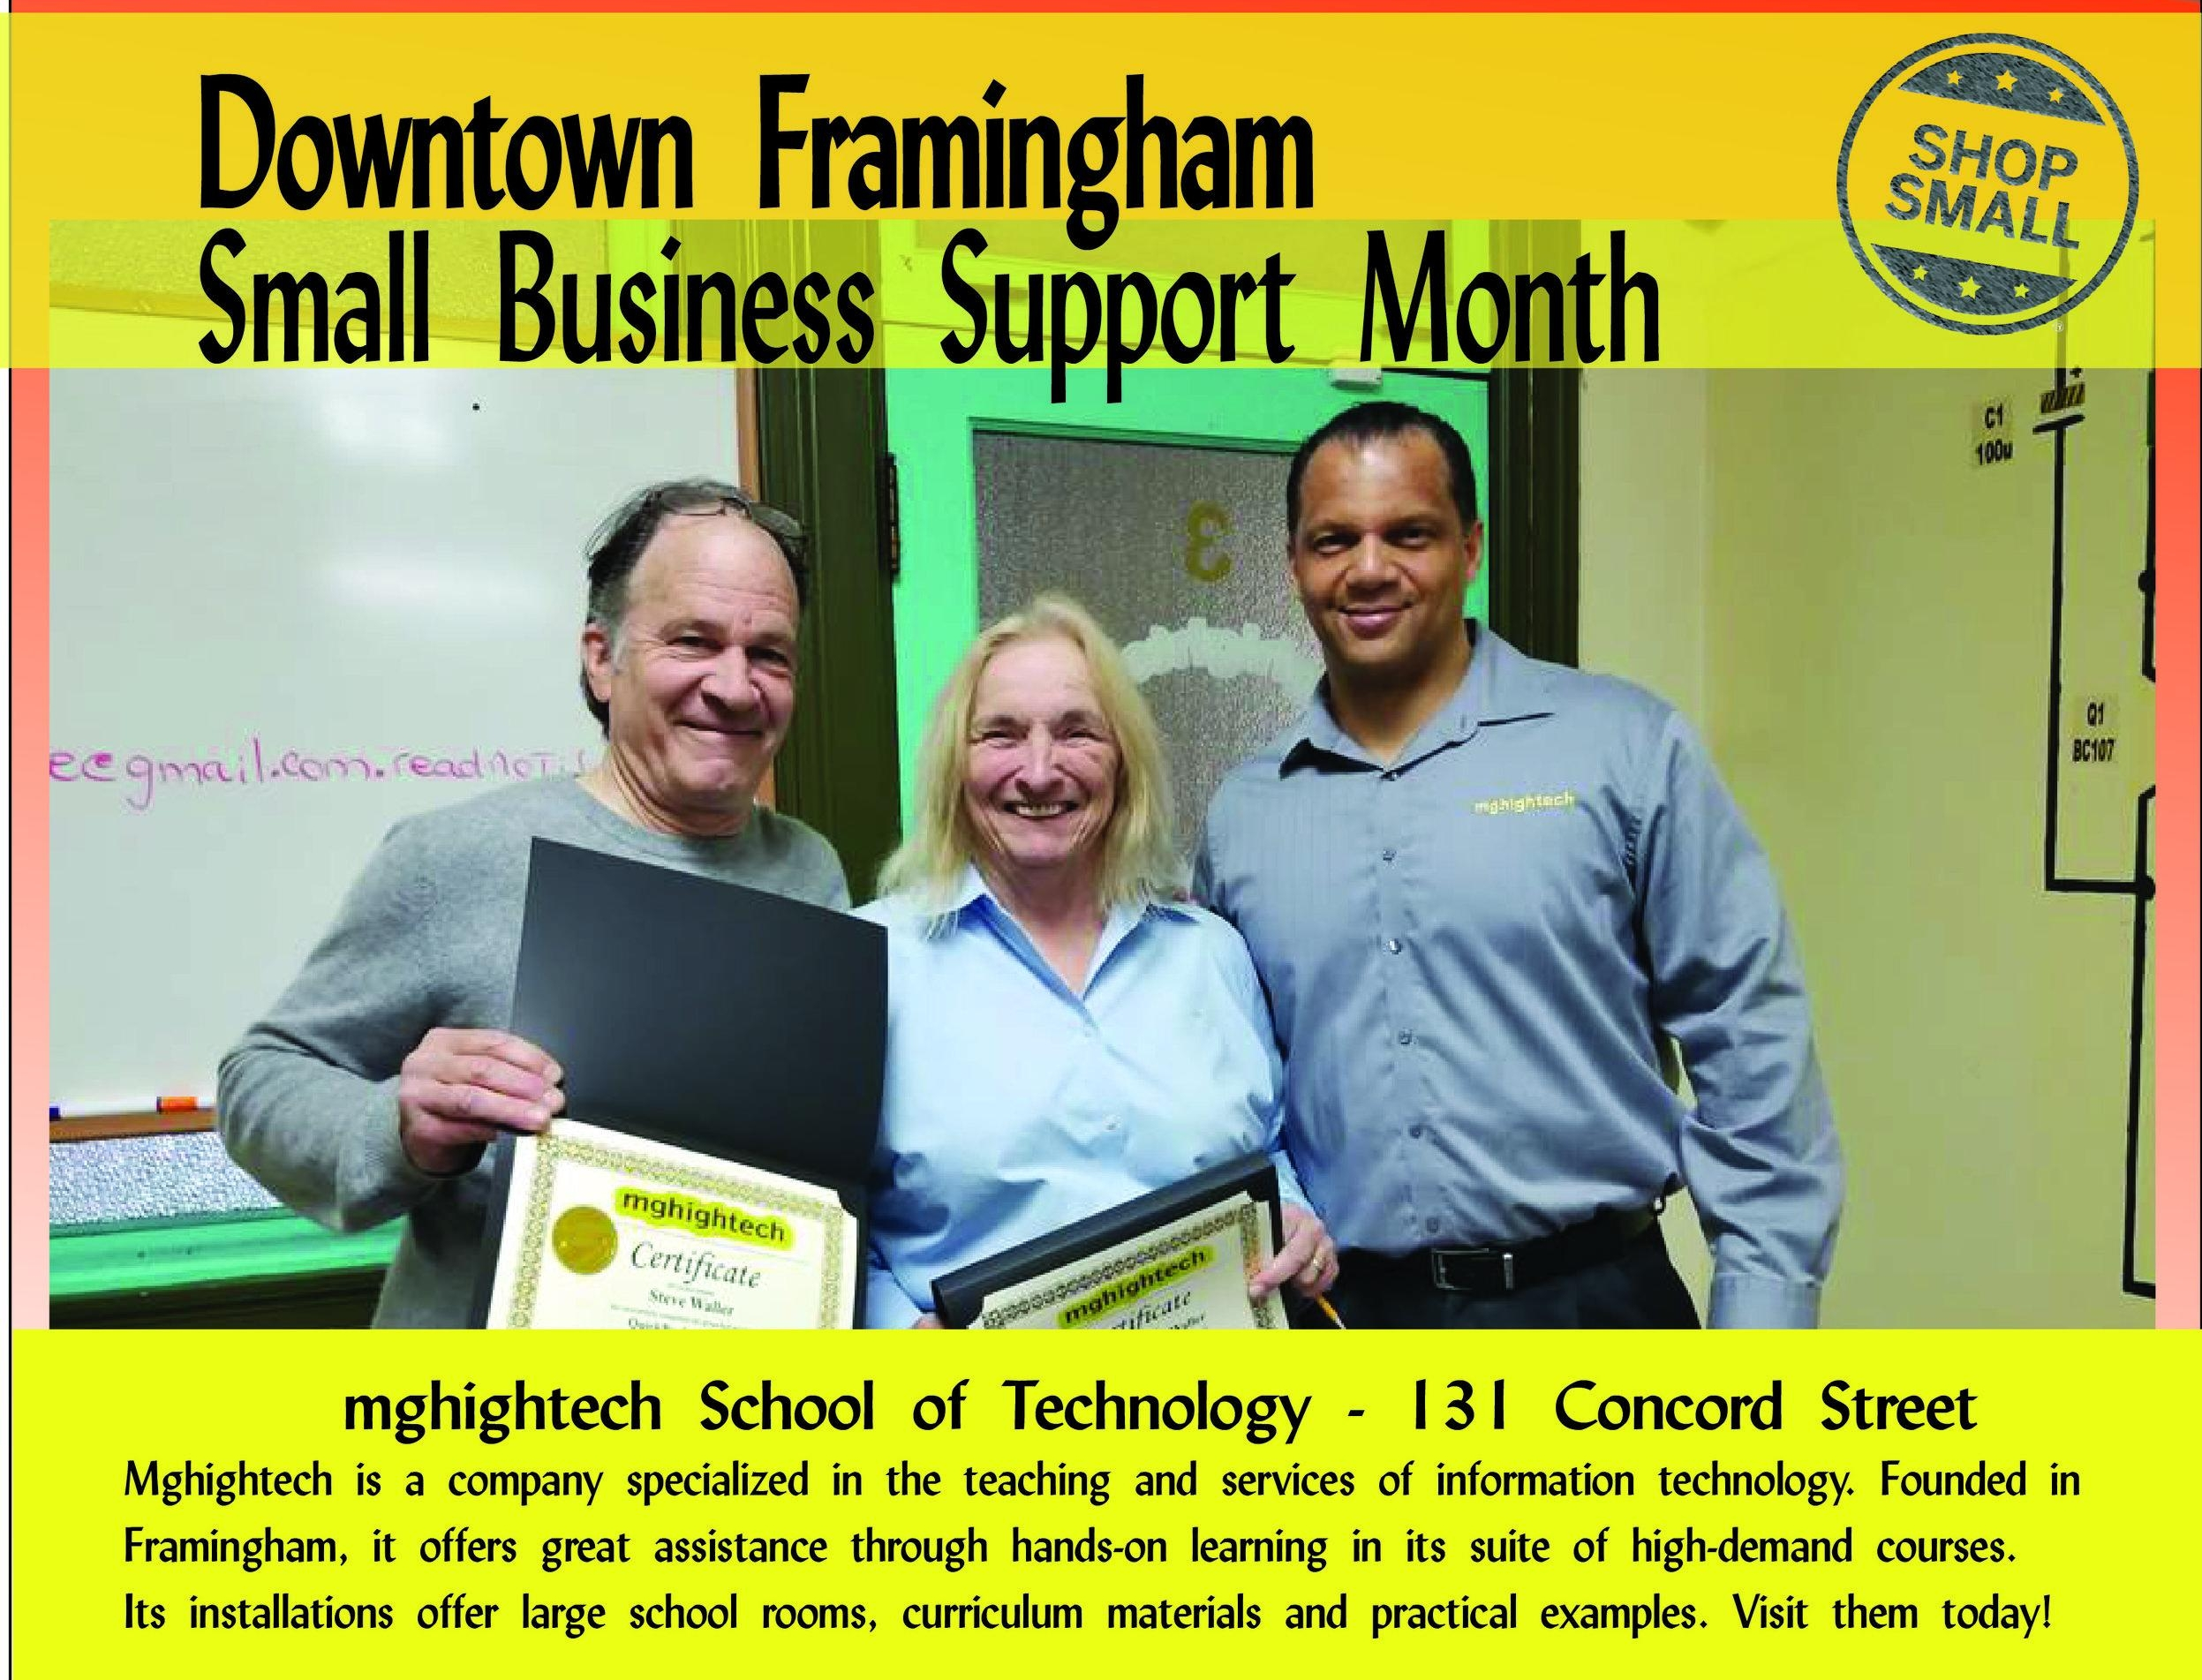 """Small Business Support Month is a hit! Reason #9 to shop small:  """"Get real value for yourself! Reader surveys by the Consumers Union repeatedly show independent businesses beating their chain competitors in overall customer satisfaction (and often save you money).""""  Speaking of satisfaction,  Mghightech School of Technology  was founded in Framingham to help residents hone hotly demanded skills to land the next big job or promotion. Check them out today!  Content Source:  https://www.amiba.net/resources/localhero/"""